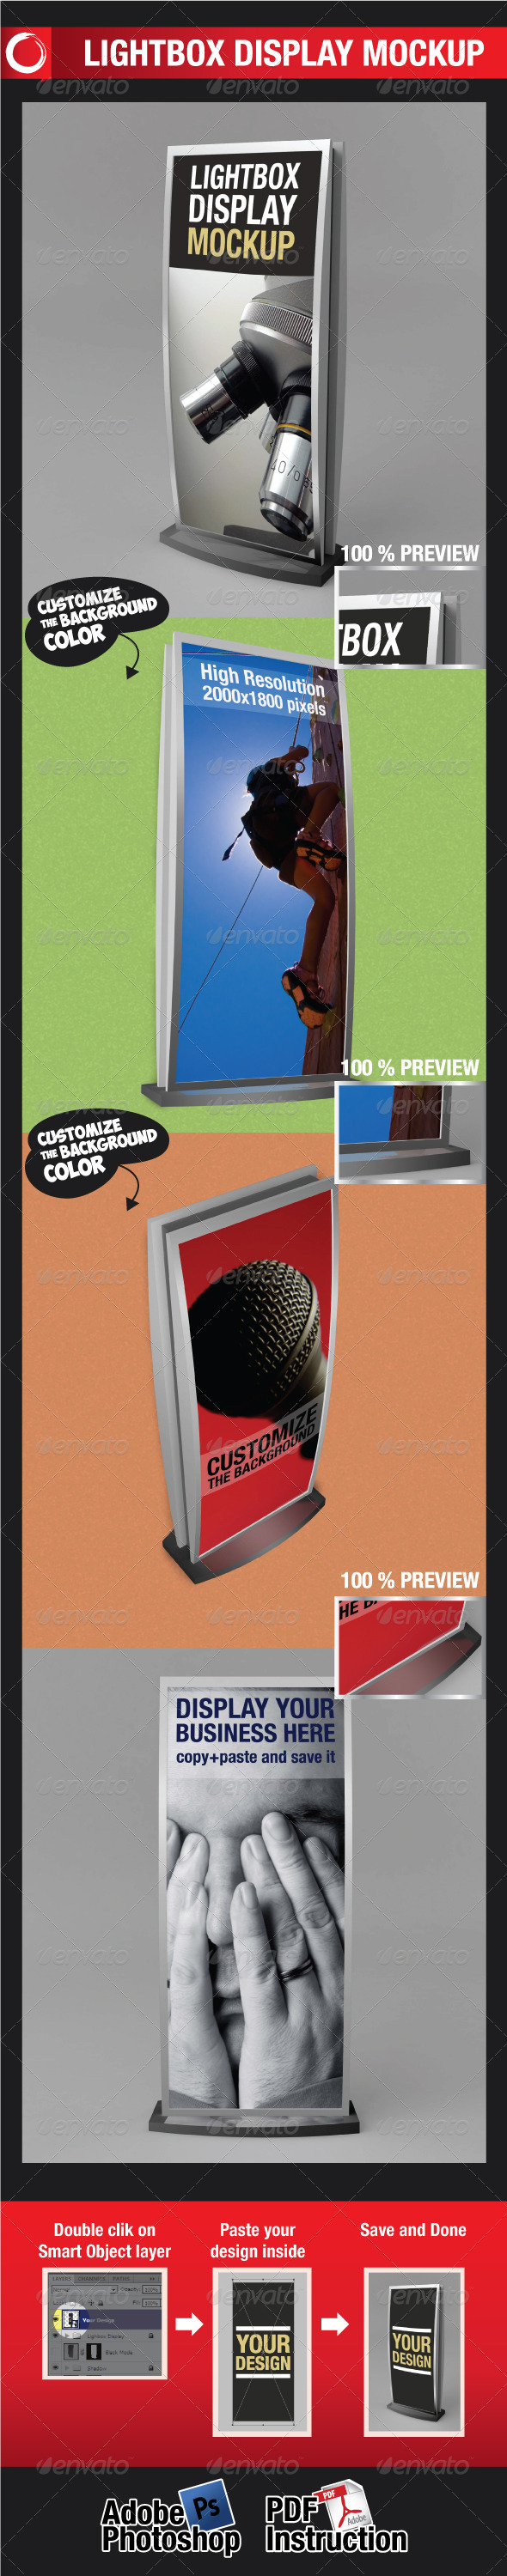 GraphicRiver Lightbox Display Mockup 2032492